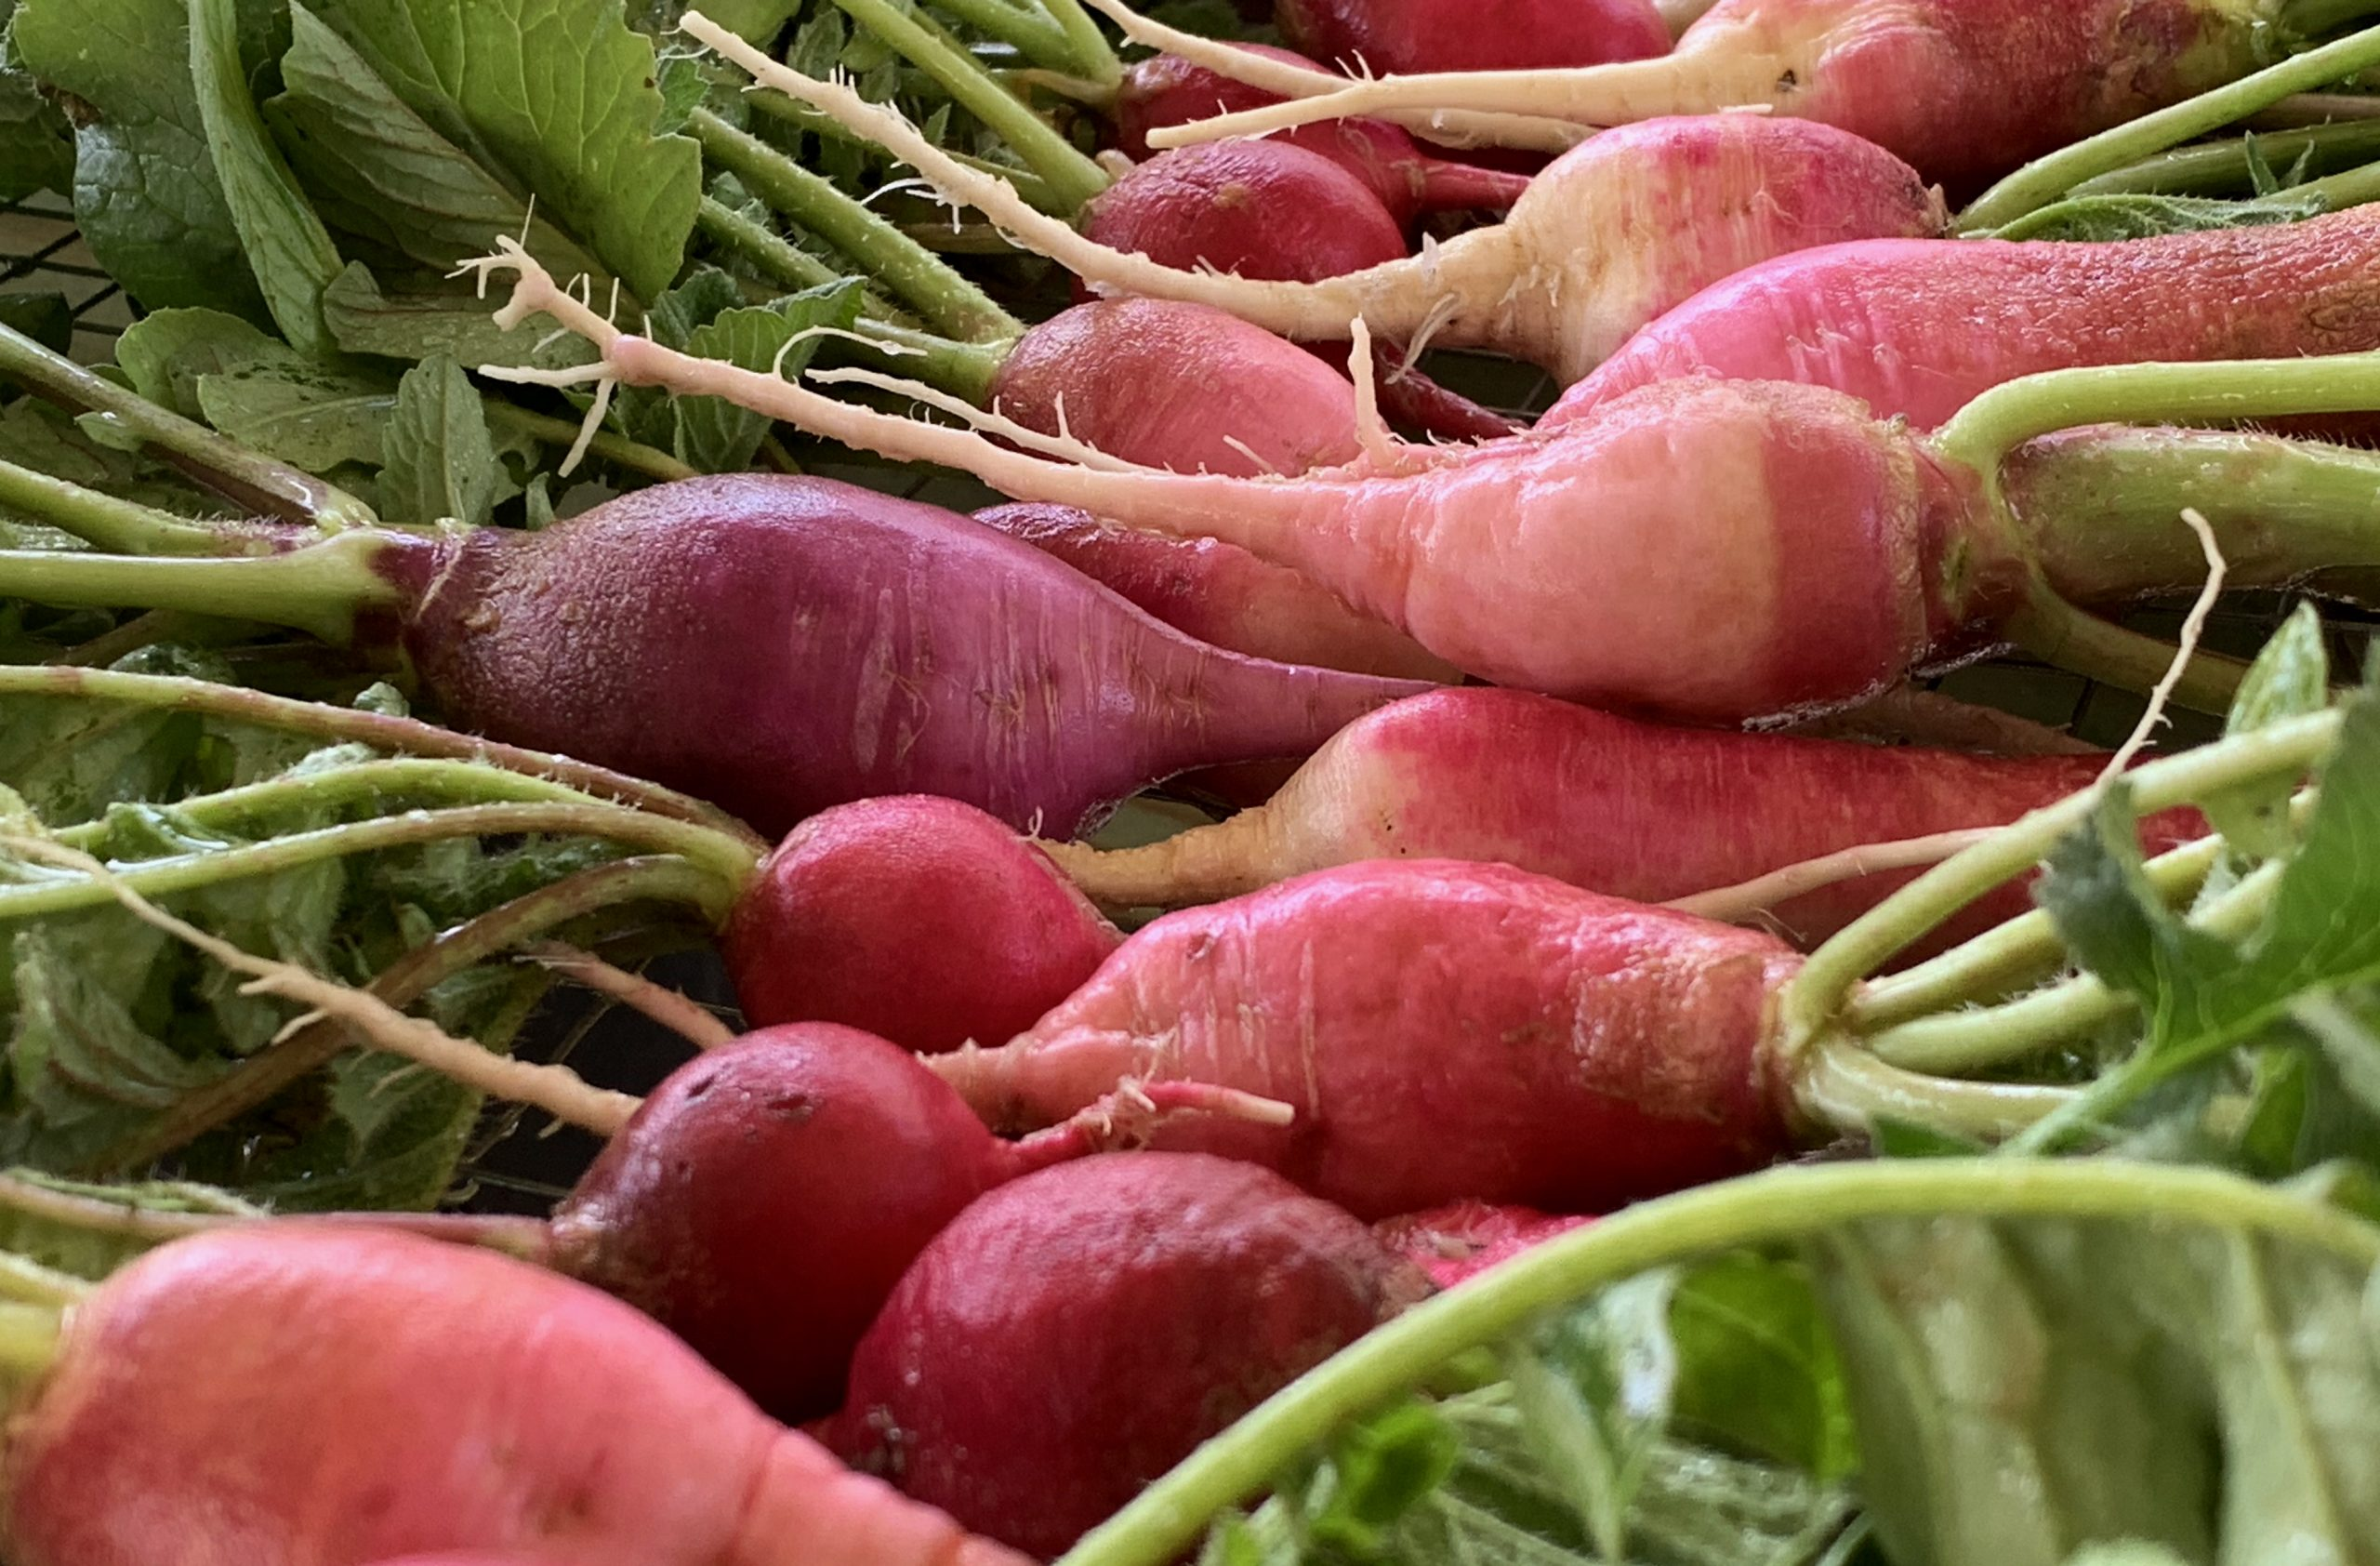 Radishes from The FARM